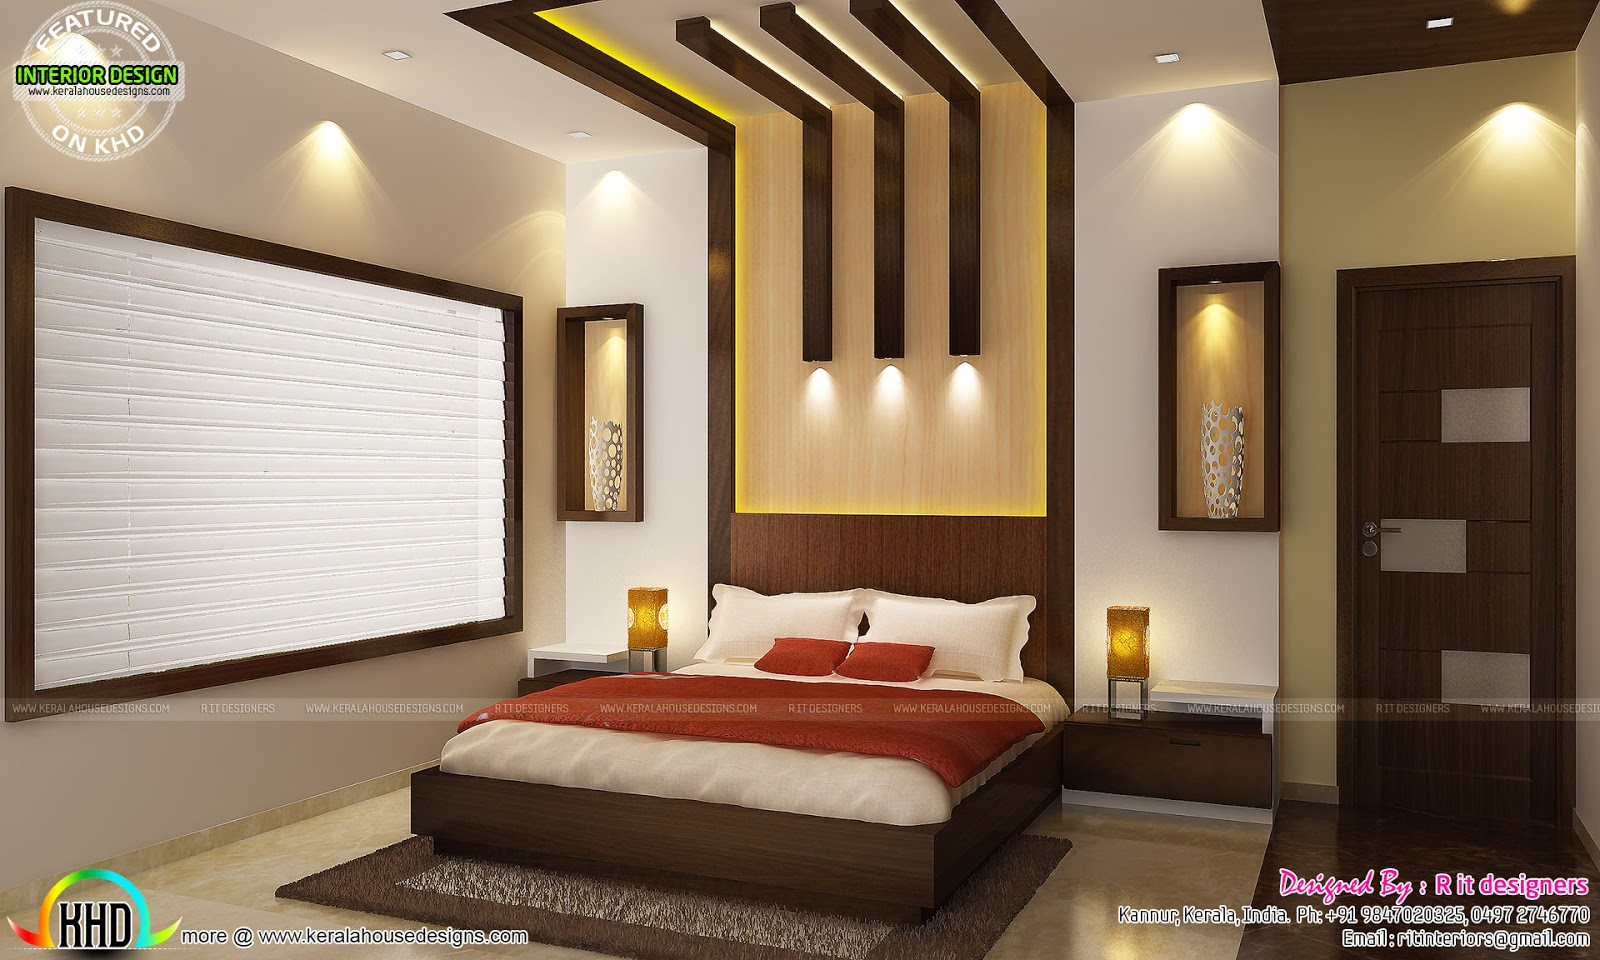 Kitchen living bedroom dining interior decor kerala for Bedroom decor styles